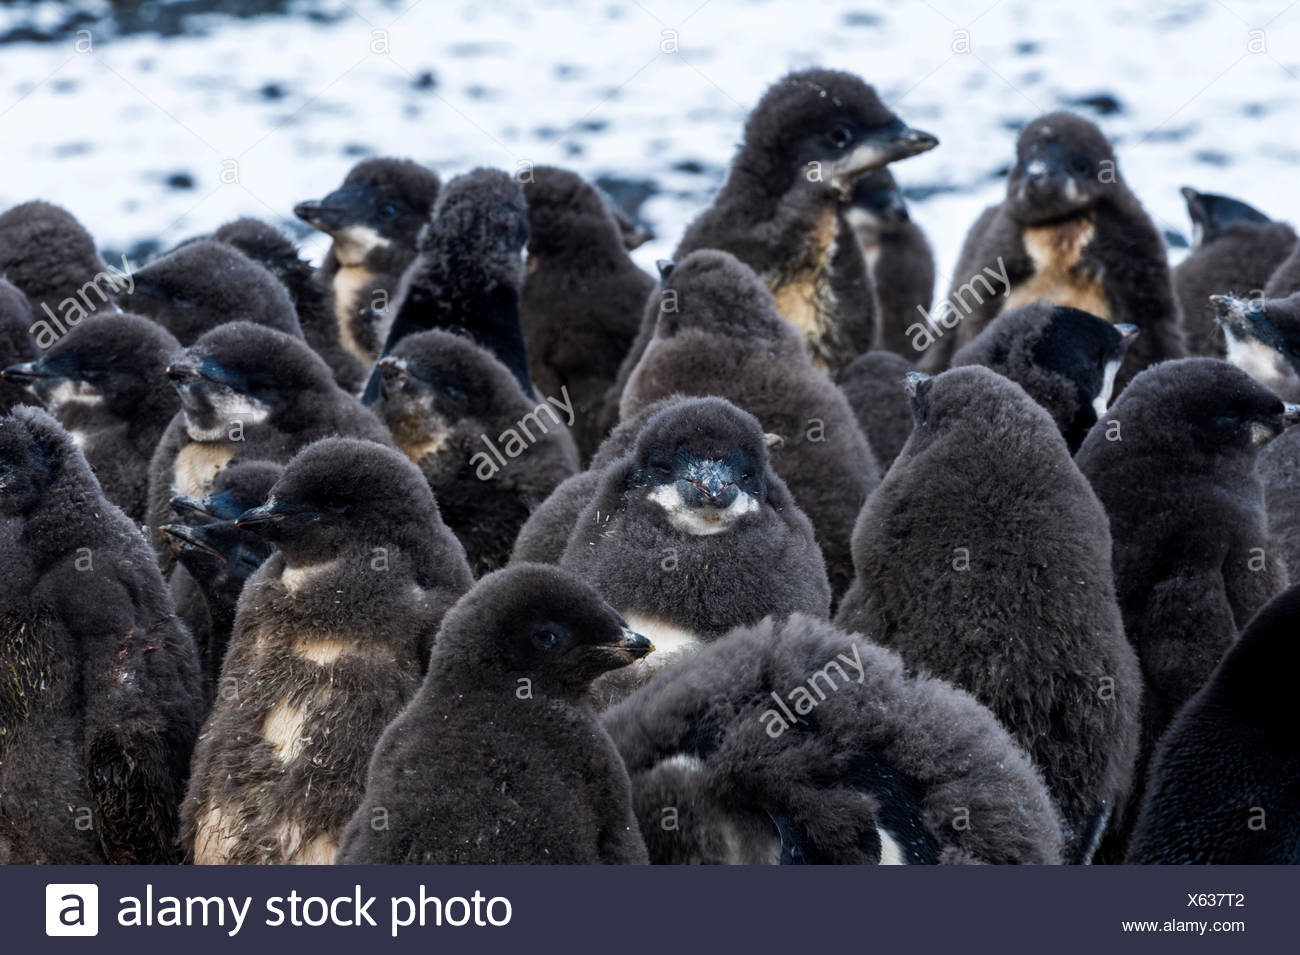 A creche of fluffy Adelie Penguin chicks on a beach in Antarctica. - Stock Image